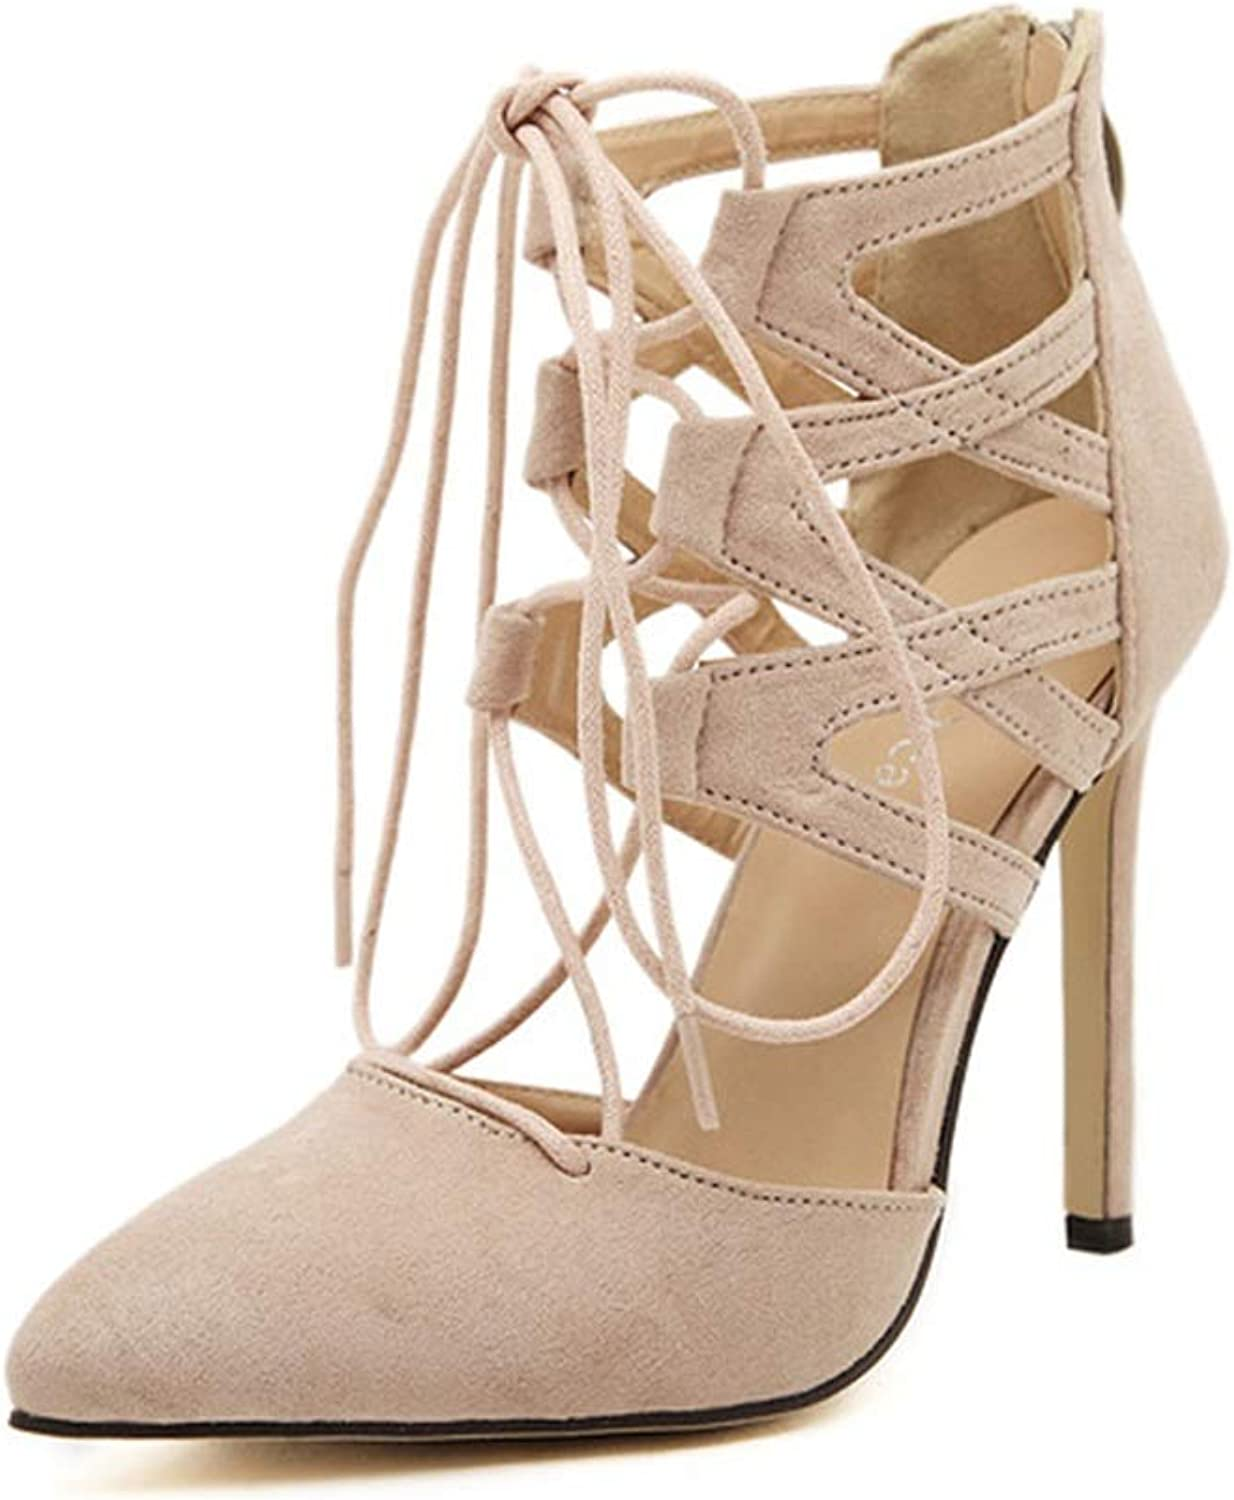 Women's Stilettos Pointed Toe Straps Strappy Pump Heels Dress Party Suede Pointed Strap Sandals Black Beige (color   A, Size   36)